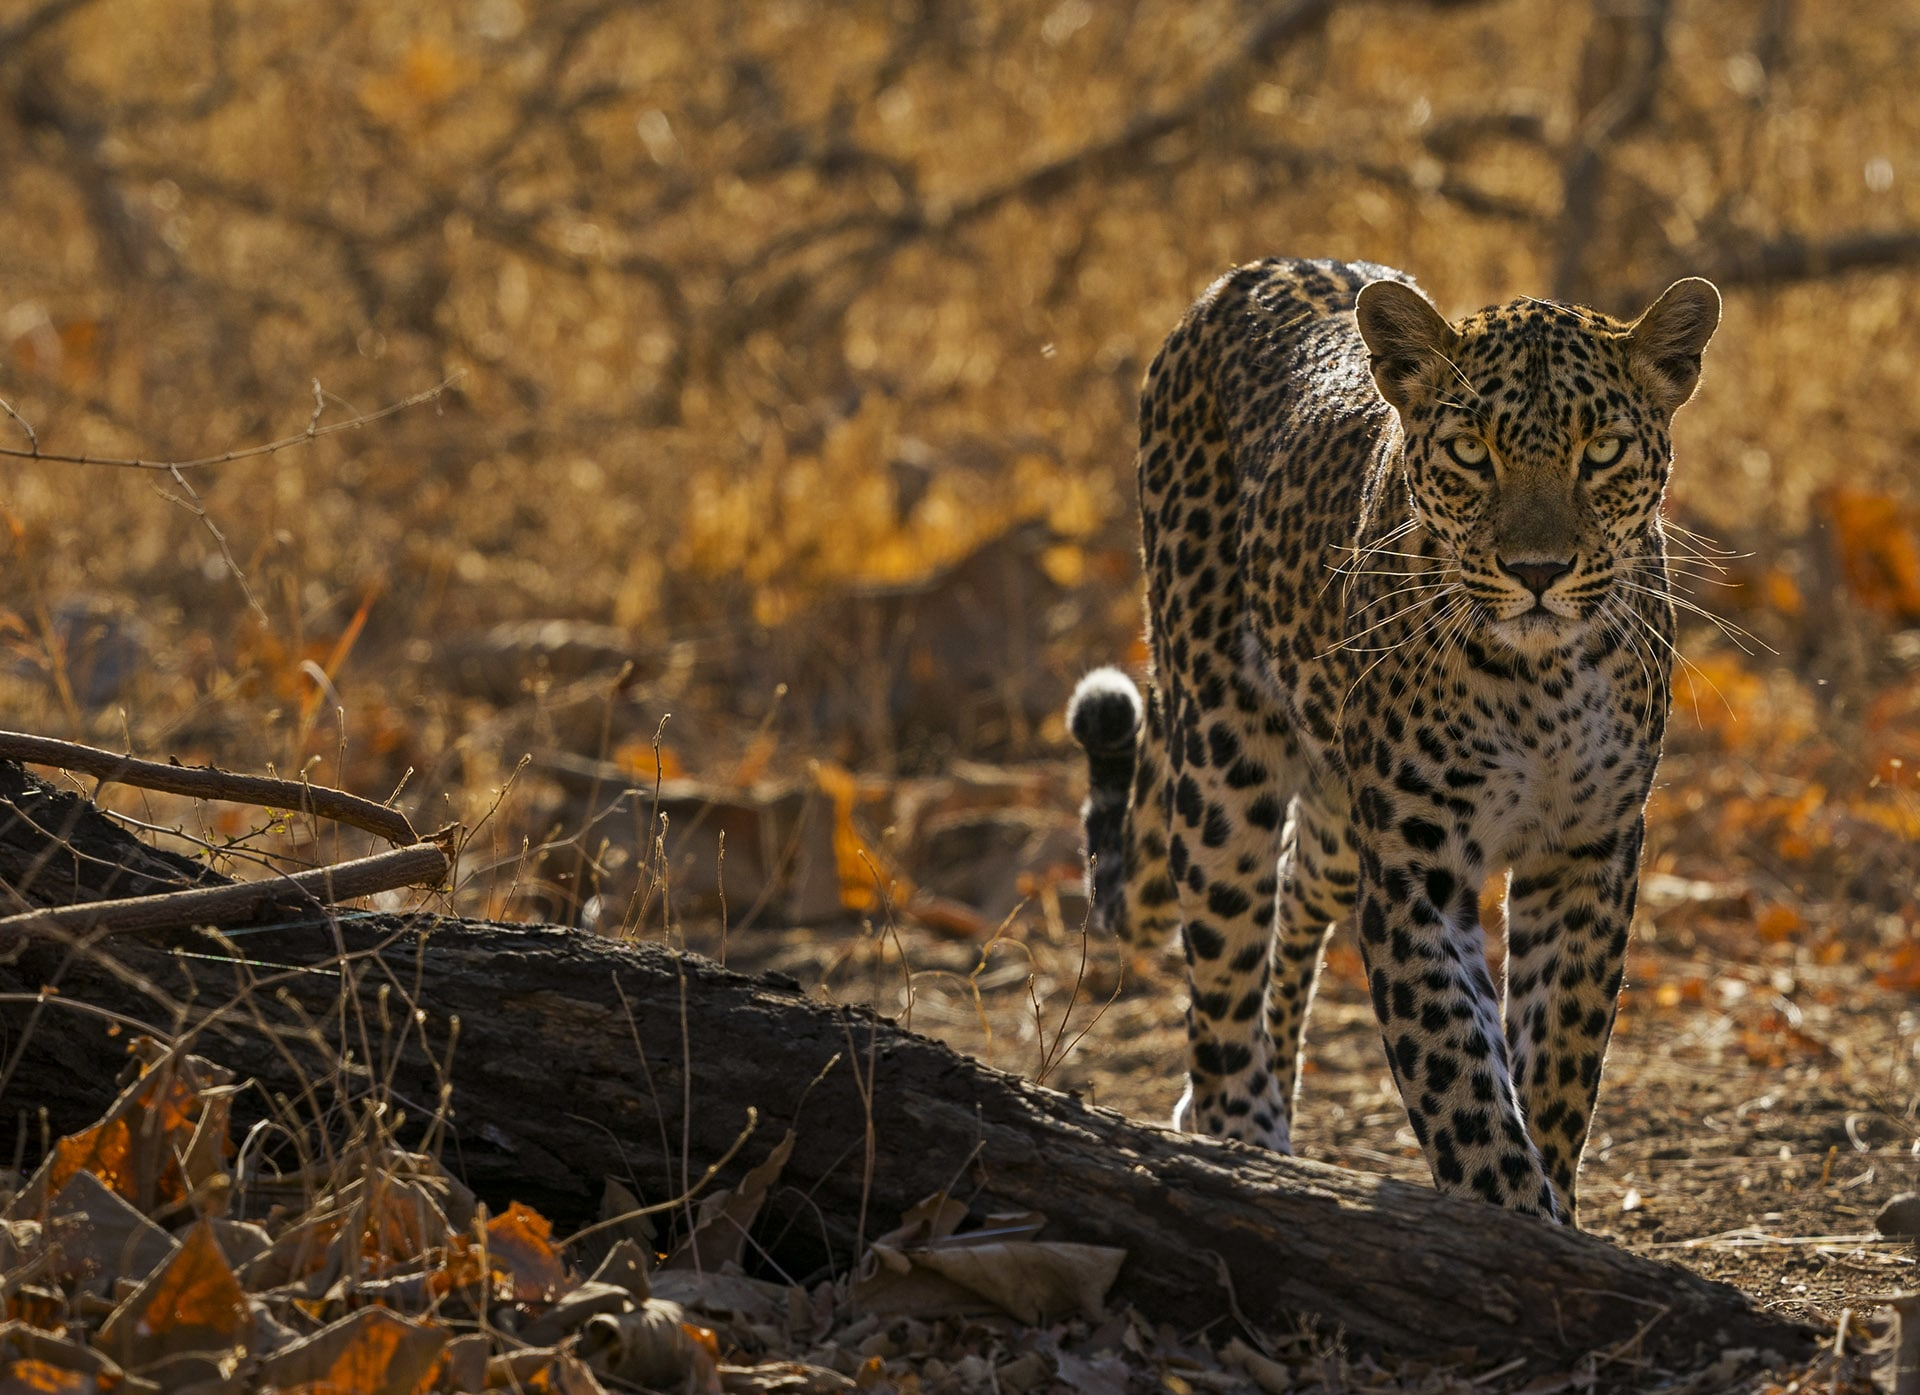 The park is best known for the lions, but the elusive leopard is the second largest predator of the forest. Photo: Dhritiman Mukherjee